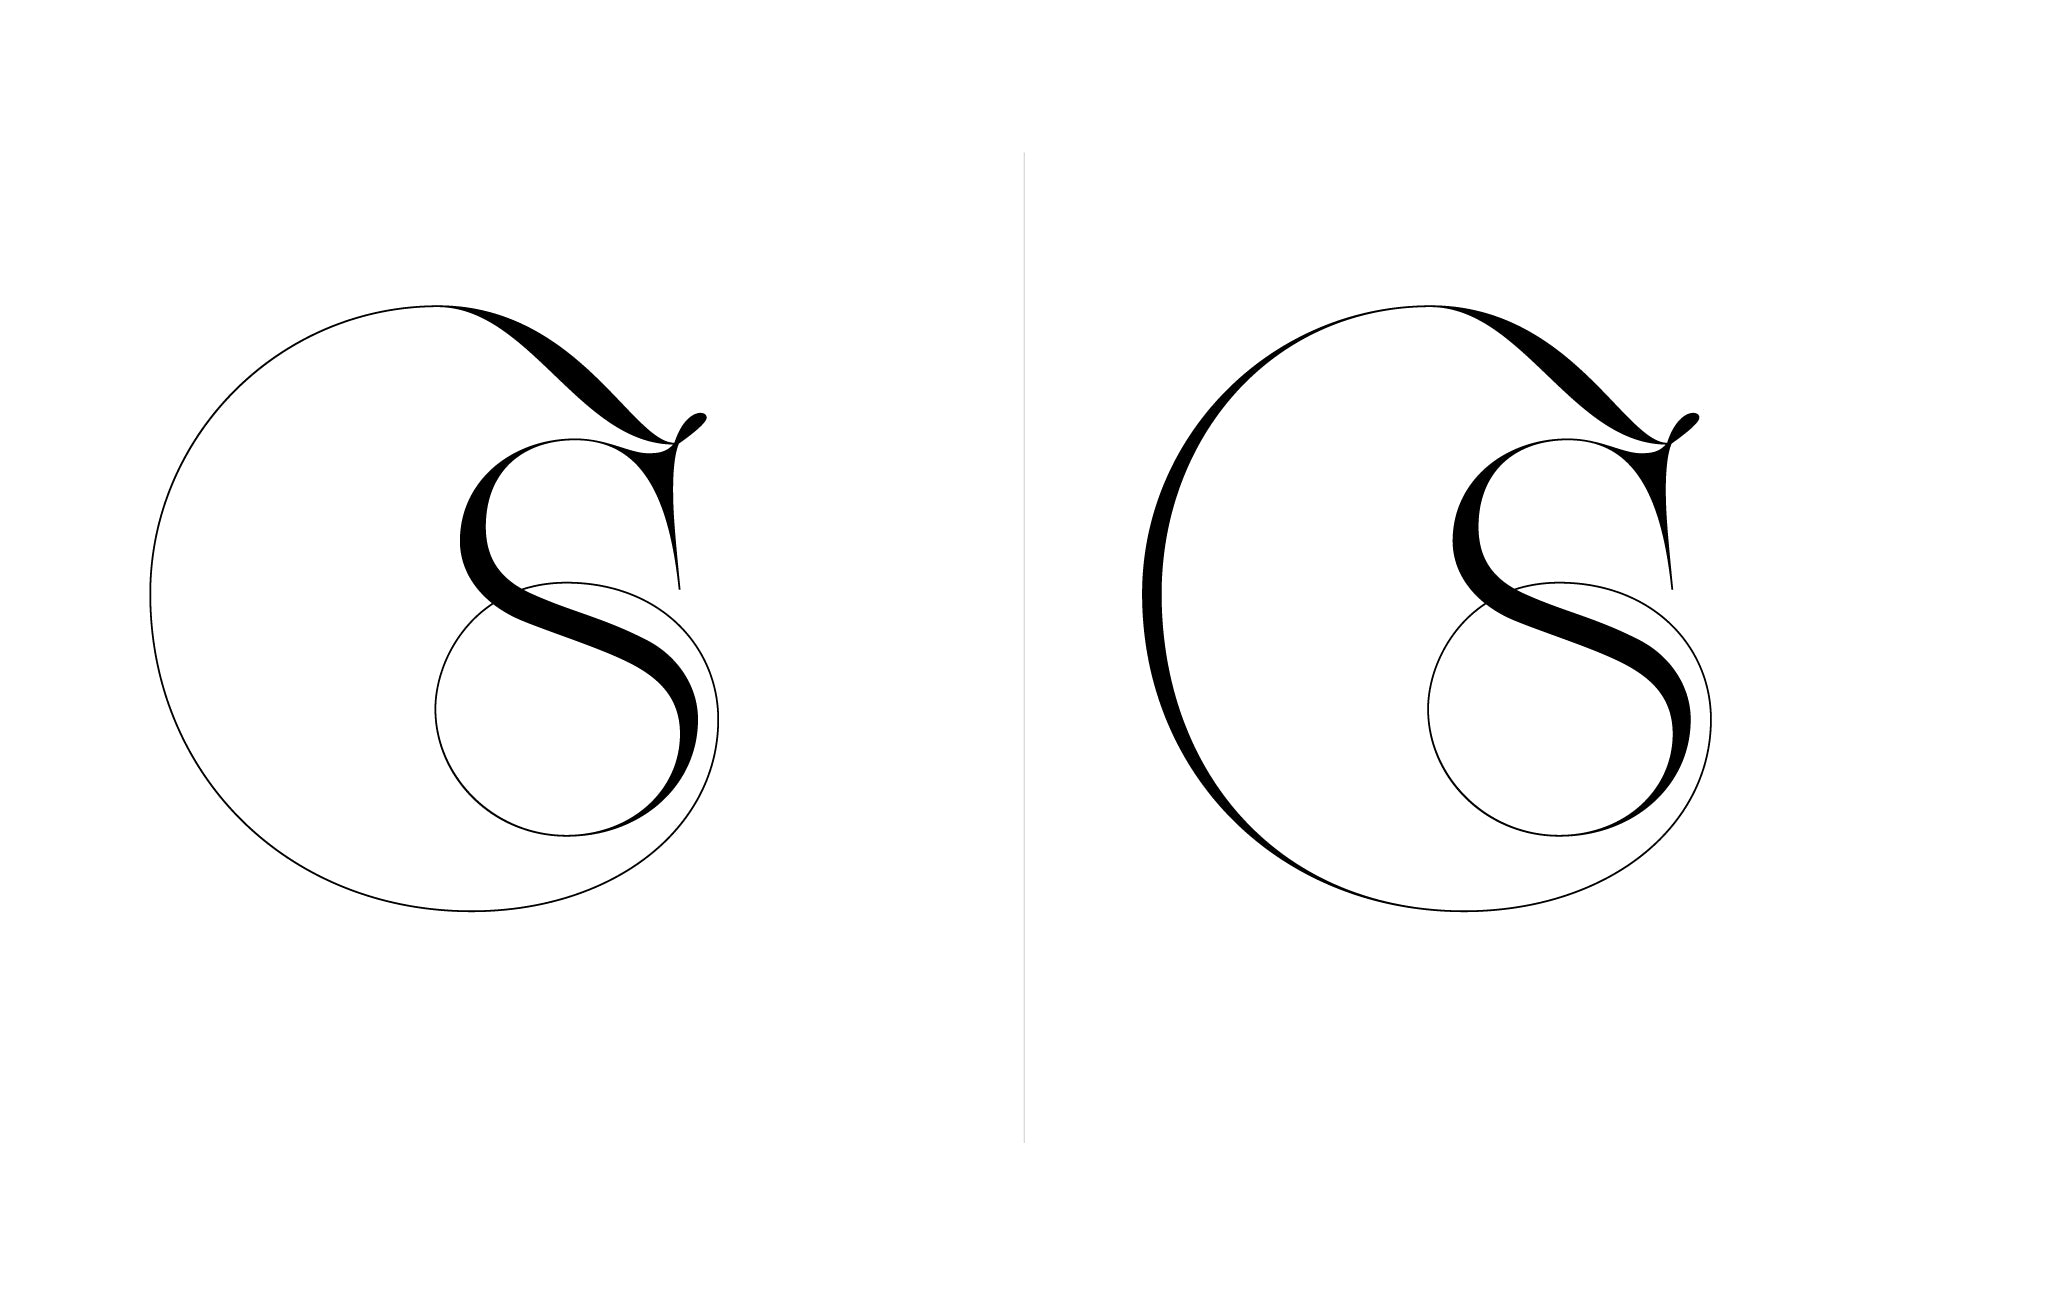 Lingerie XO Sexy Ligatures by Moshik Nadav Typography - S